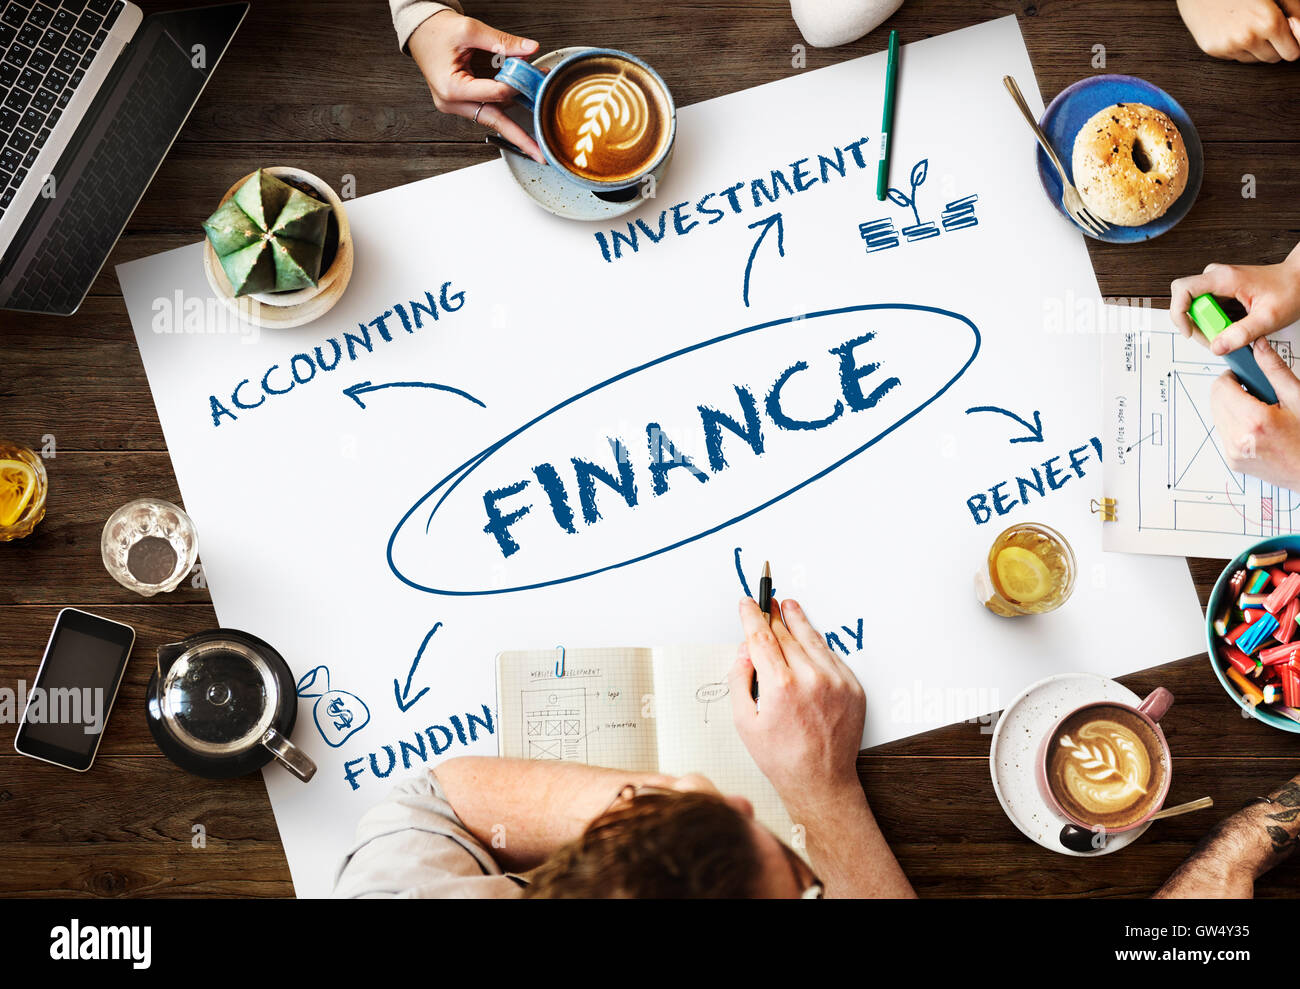 Finance Funding Commerce Business Concept - Stock Image